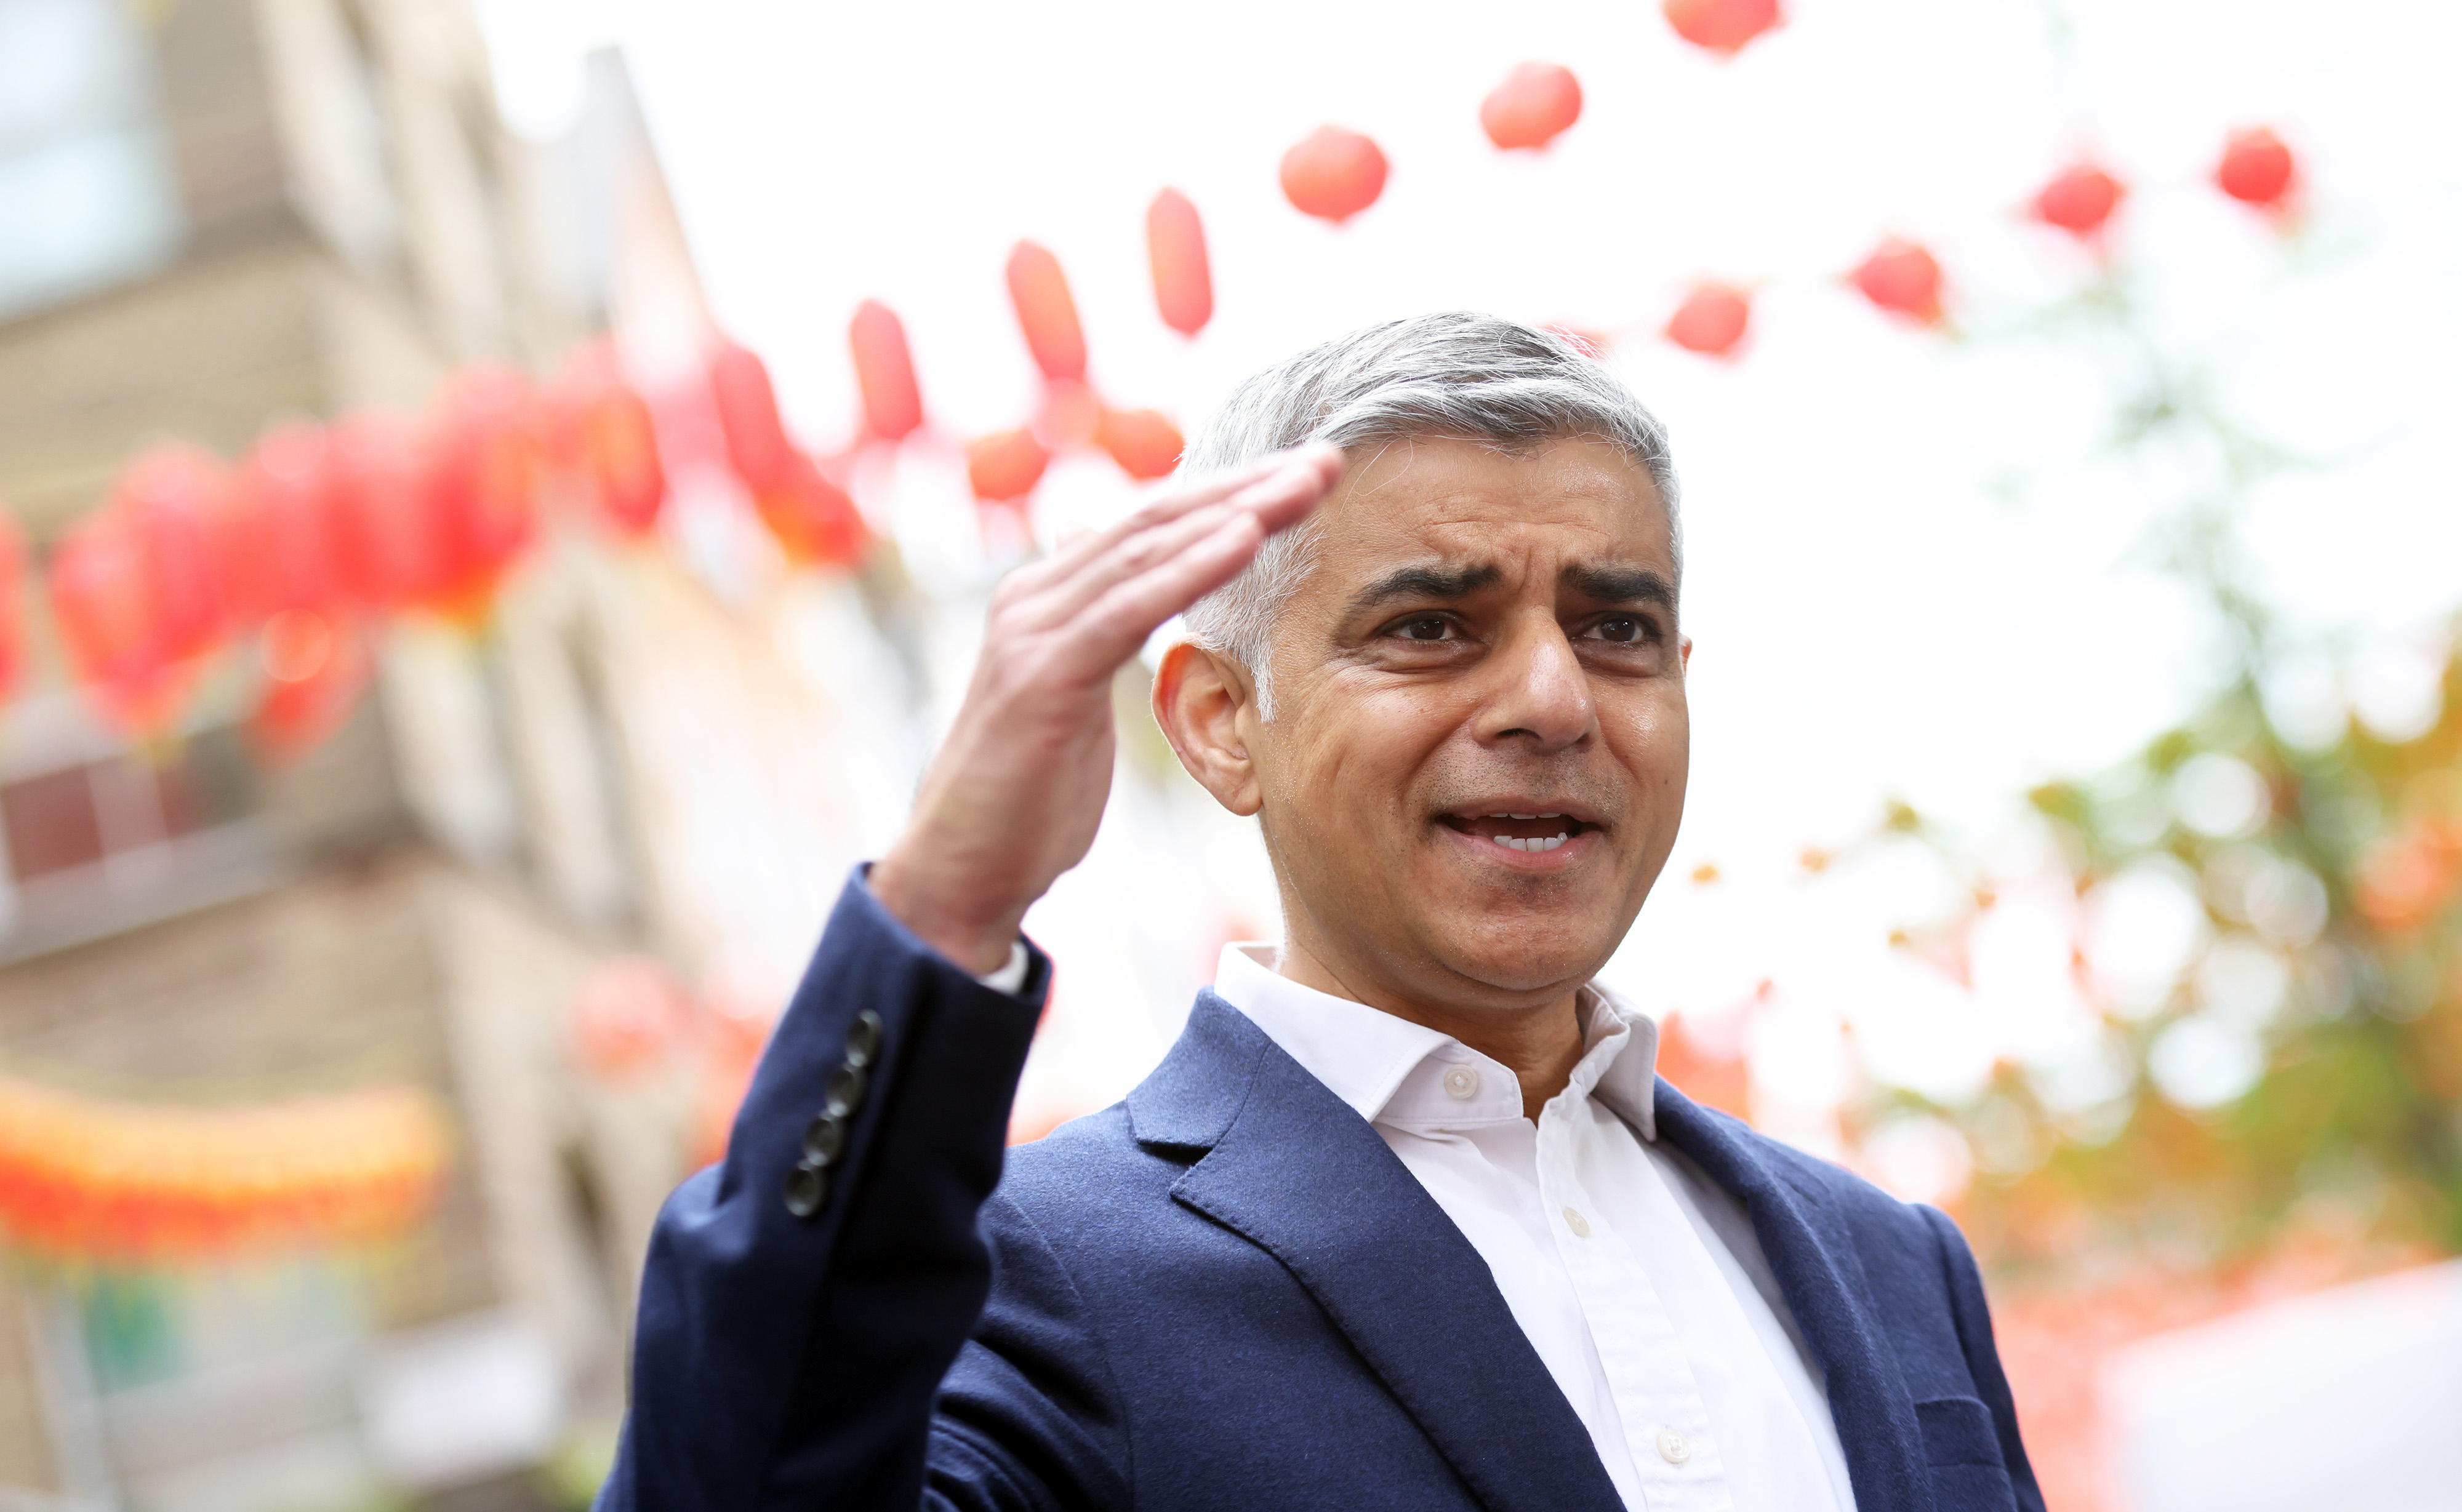 Mayor of London Sadiq Khan stands in Chinatown on the day indoor dining resumed in London with his right hand raised.